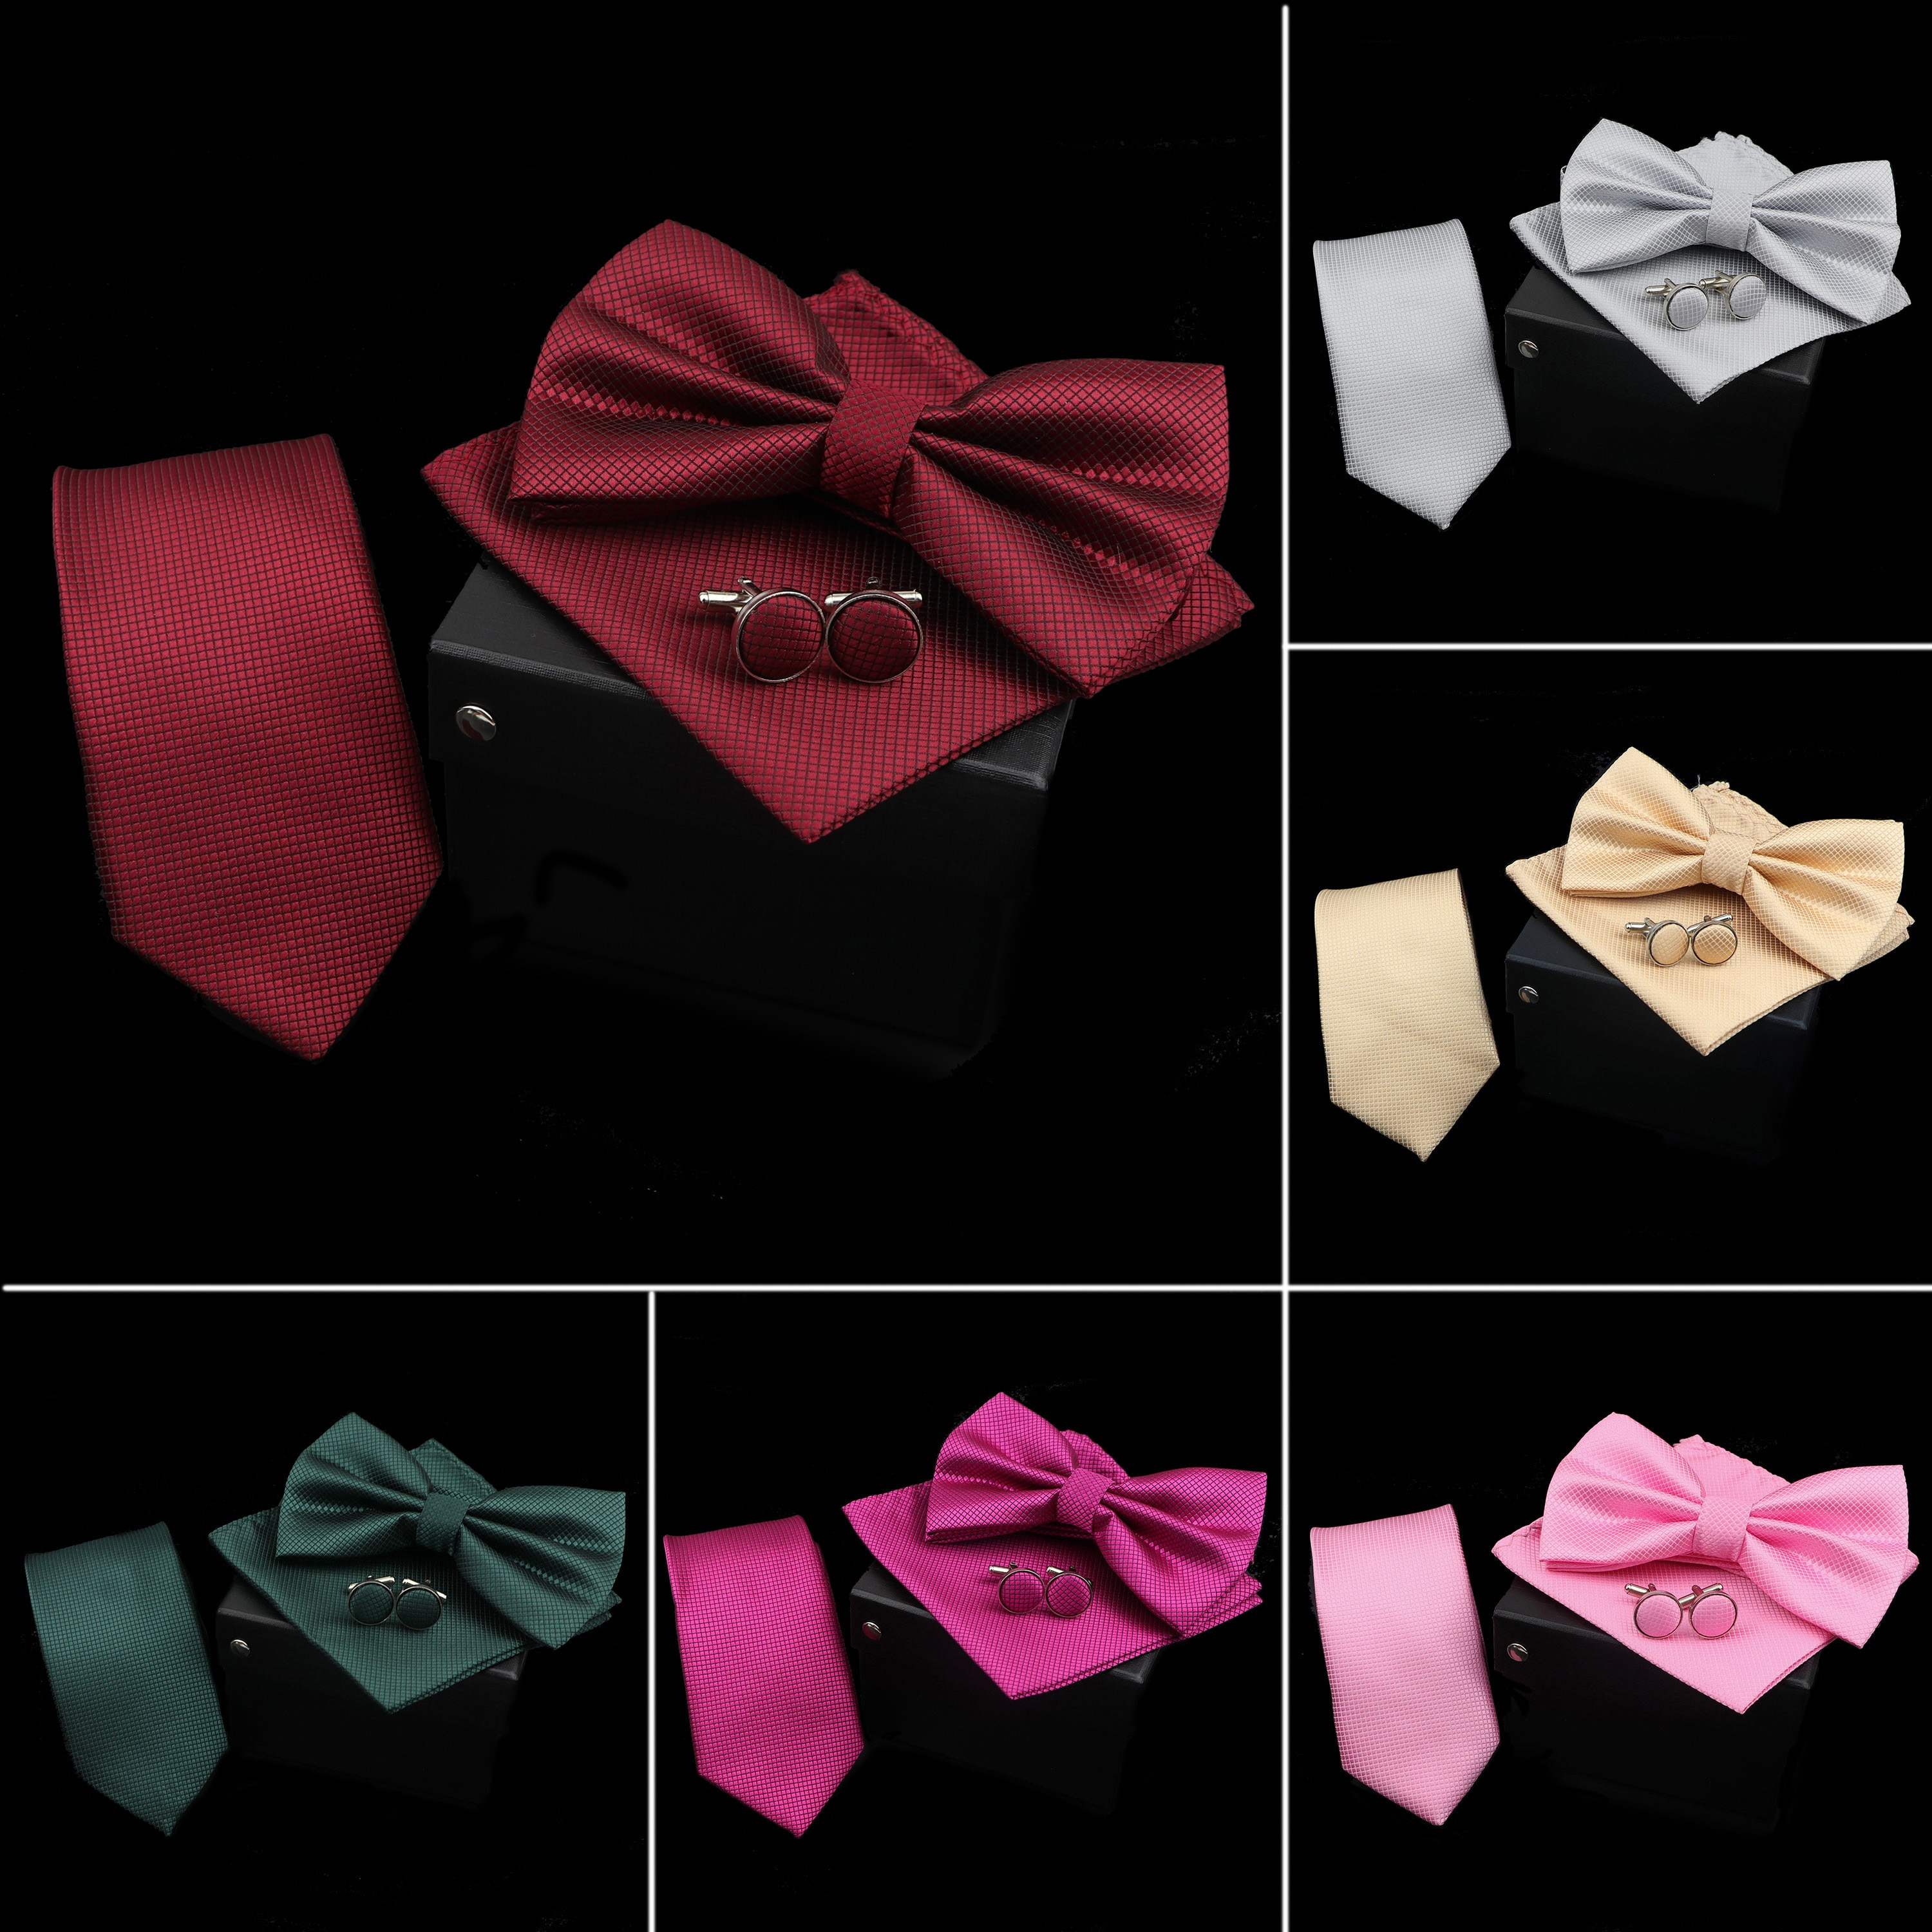 Solid Color Polyester Tie Bowtie Handkerchief Cufflinks Set Men Fashion Butterfly Wedding Necktie Without Box Novelty Ties Gift